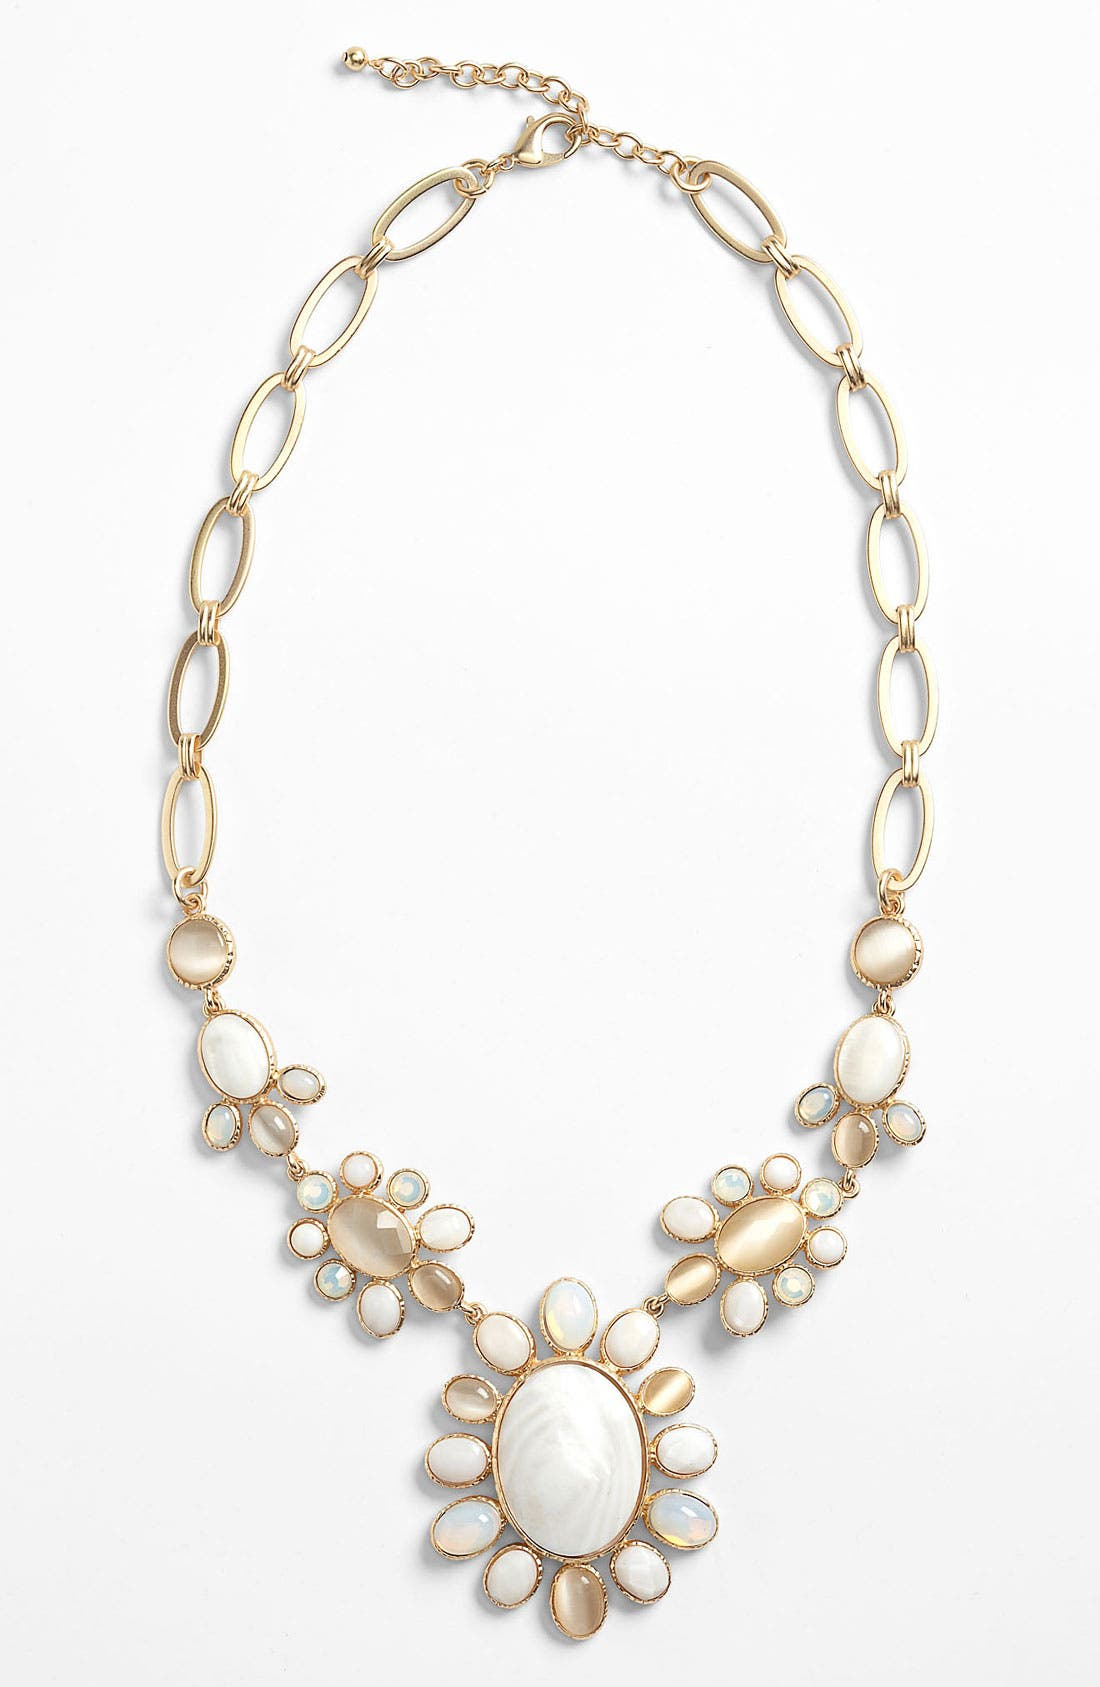 Main Image - Nordstrom 'Santorini' Frontal Necklace